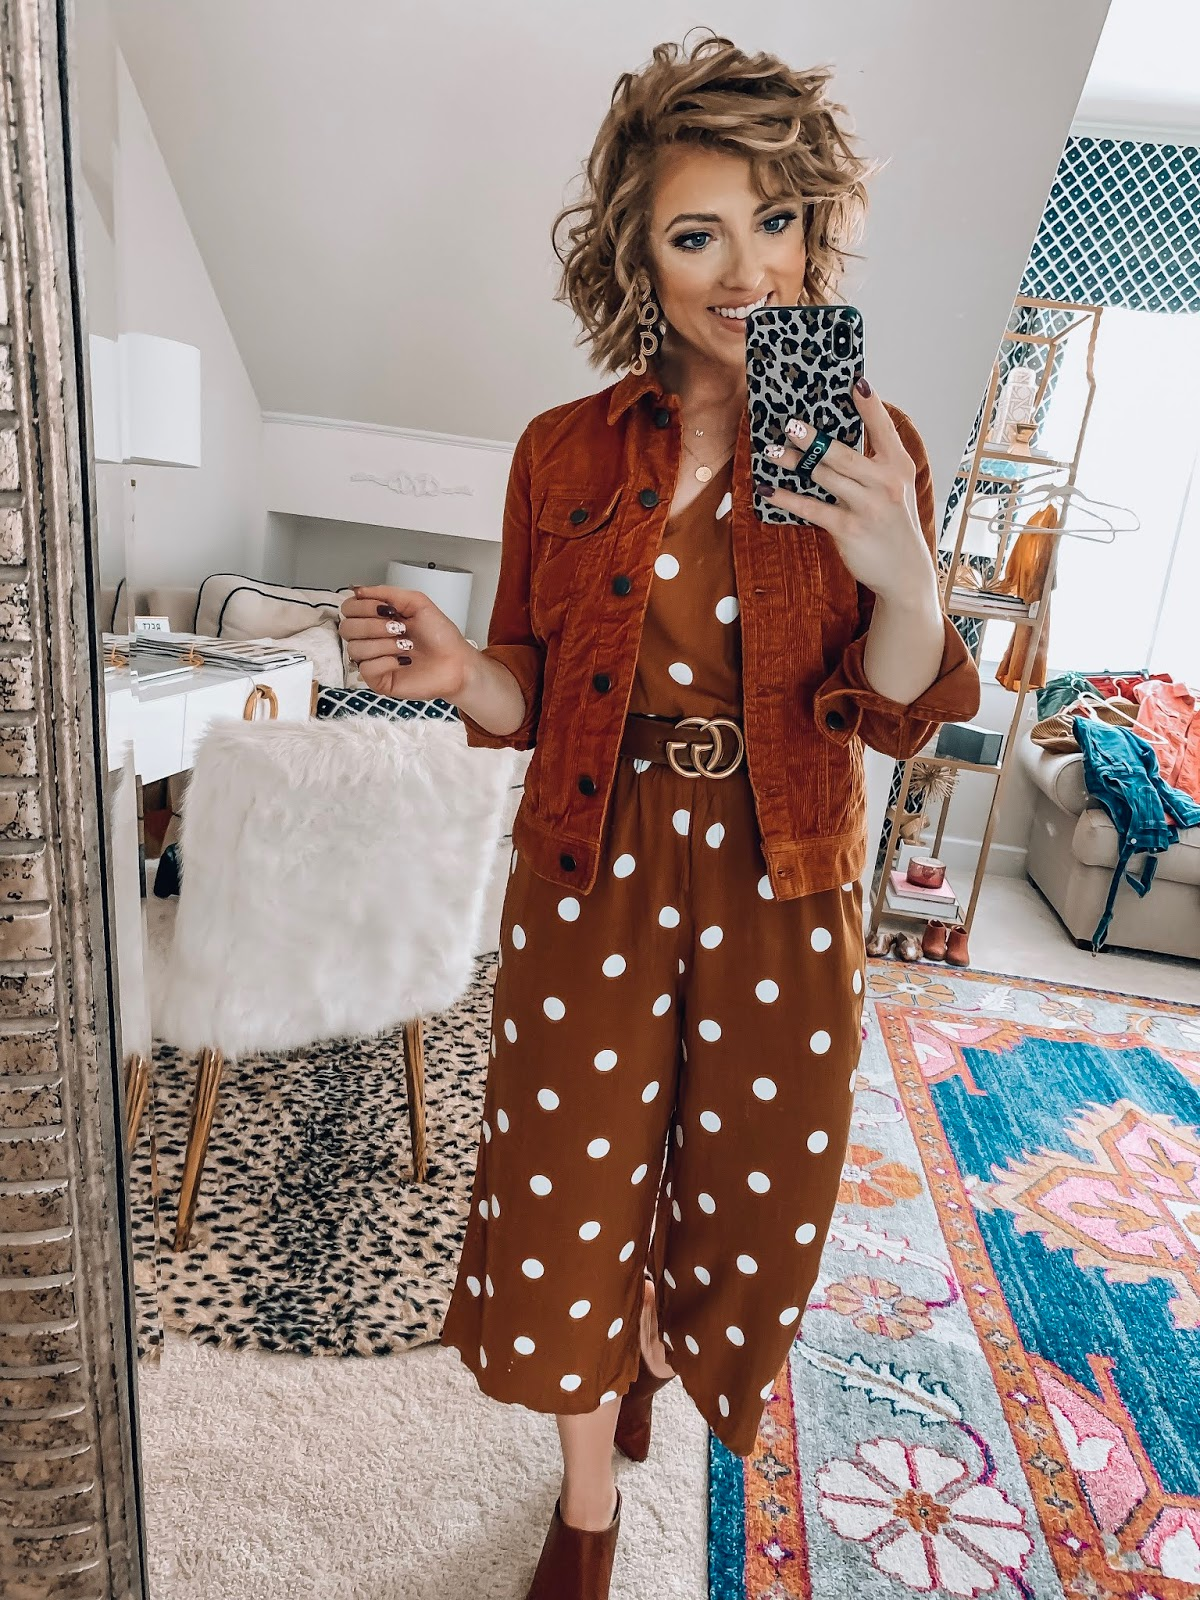 Old Navy Polka Dot Jumpsuit + Corduroy Jacket  - Somethig Delightful Blog #affordablefashion